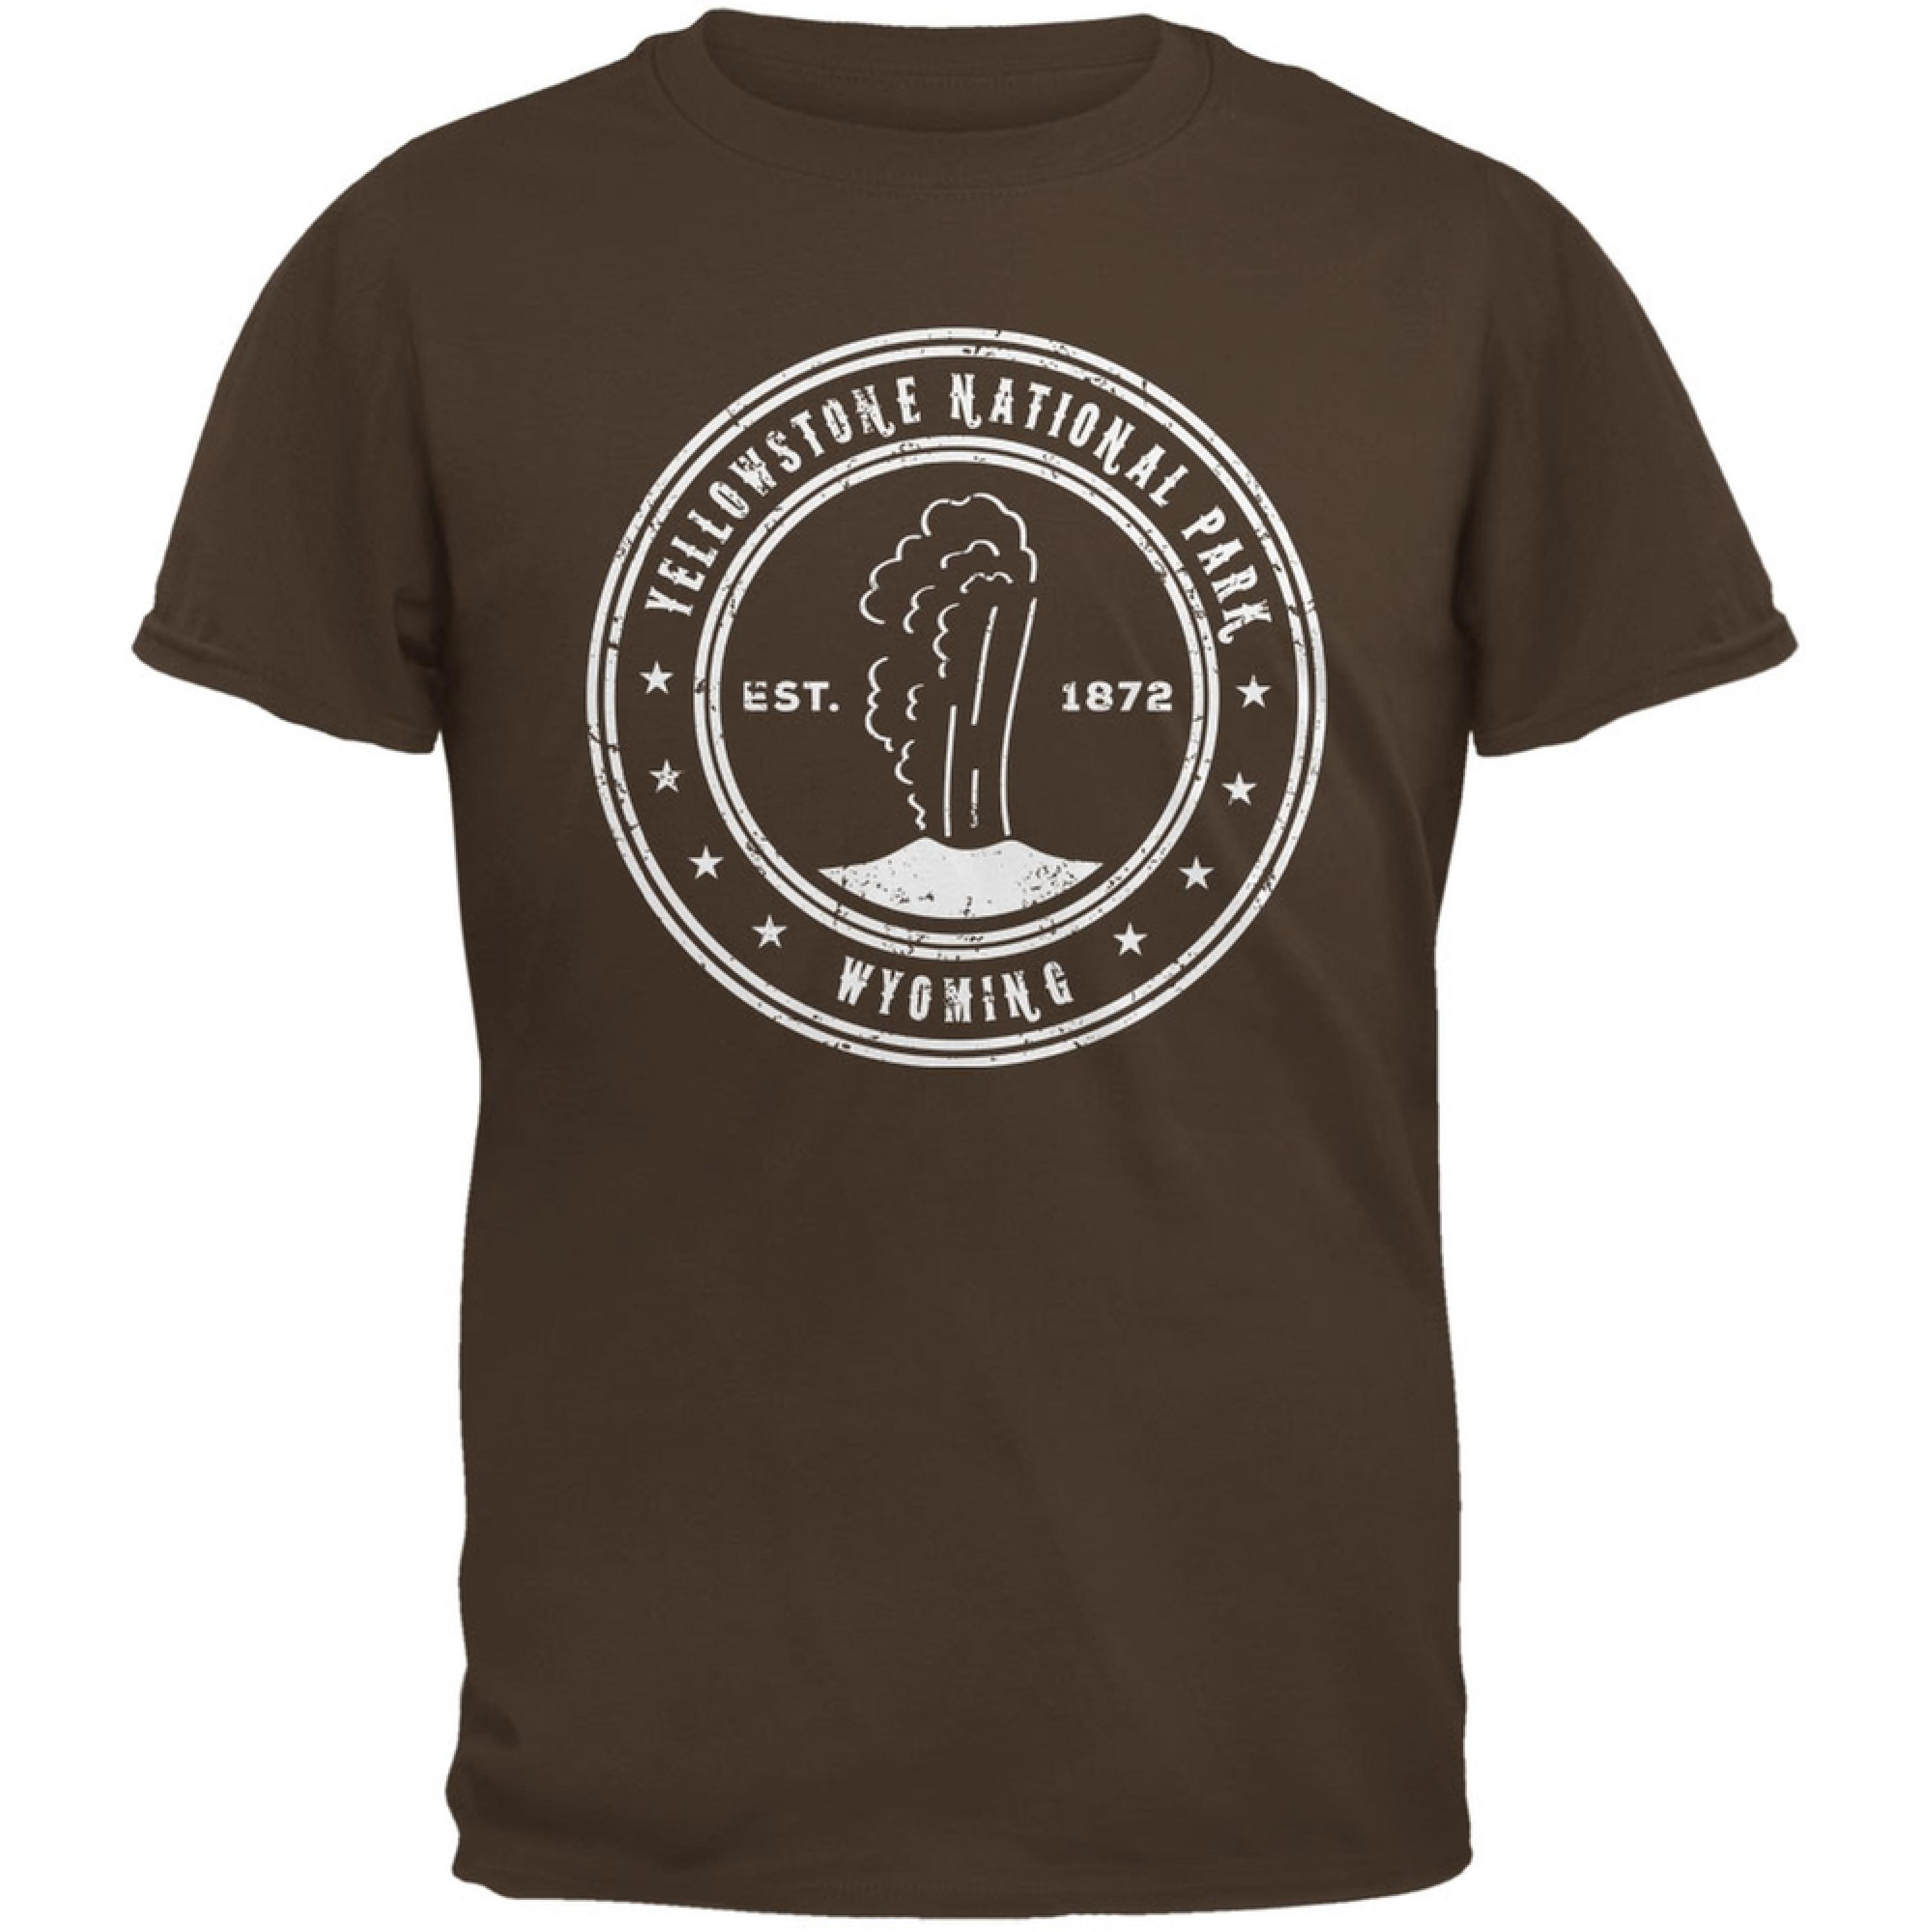 Yellowstone National Park Brown Adult T-Shirt